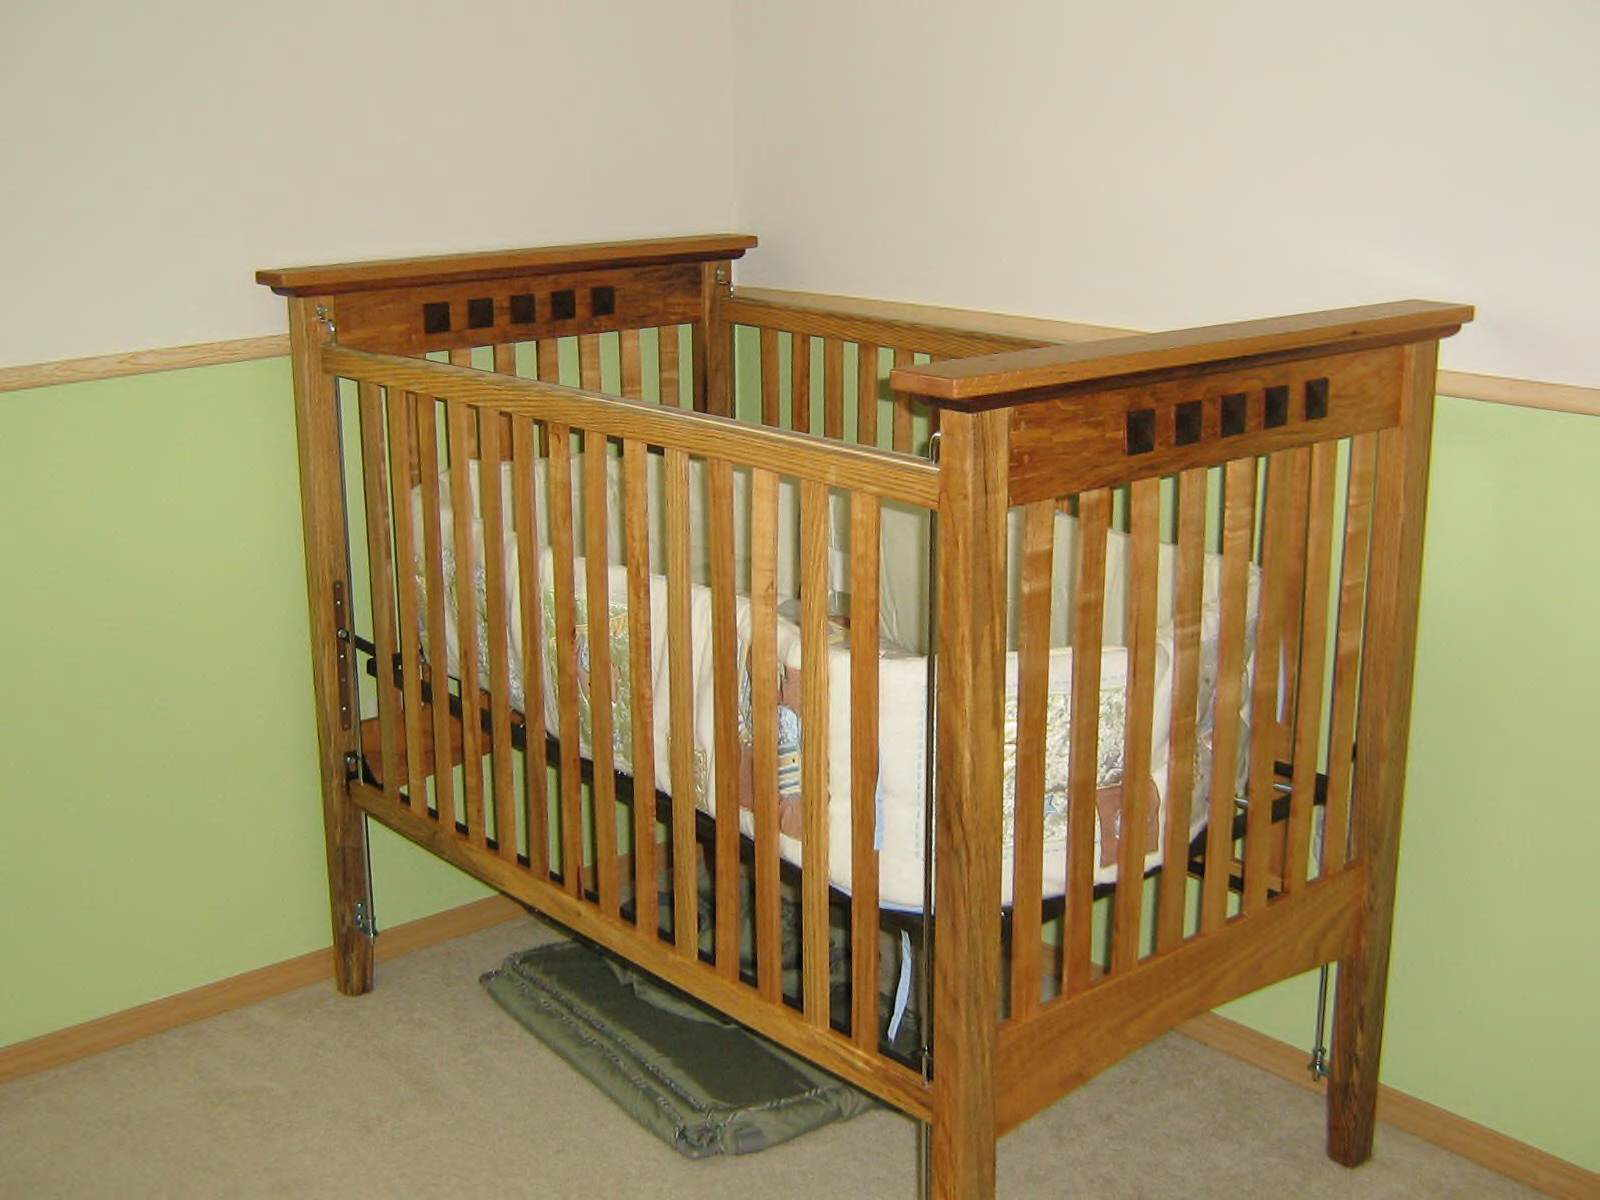 Premium maple forms the basis for this cute baby crib